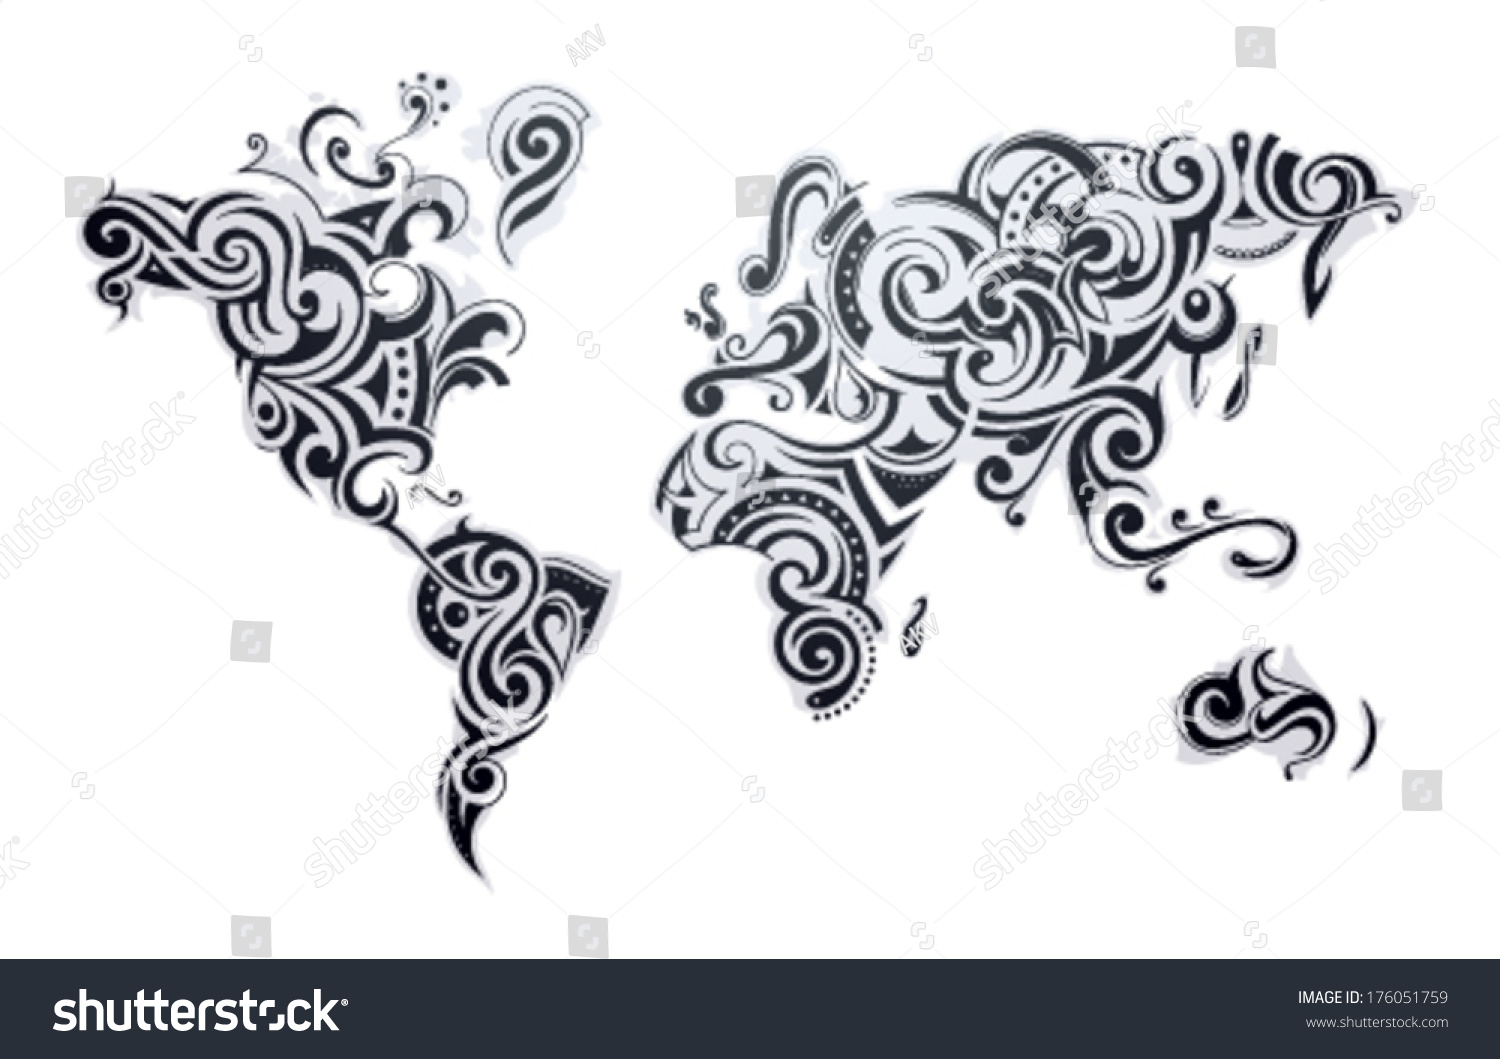 World map tattoo our earth one vectores en stock 176051759 world map tattoo our earth as one tribe concept illustration gumiabroncs Choice Image